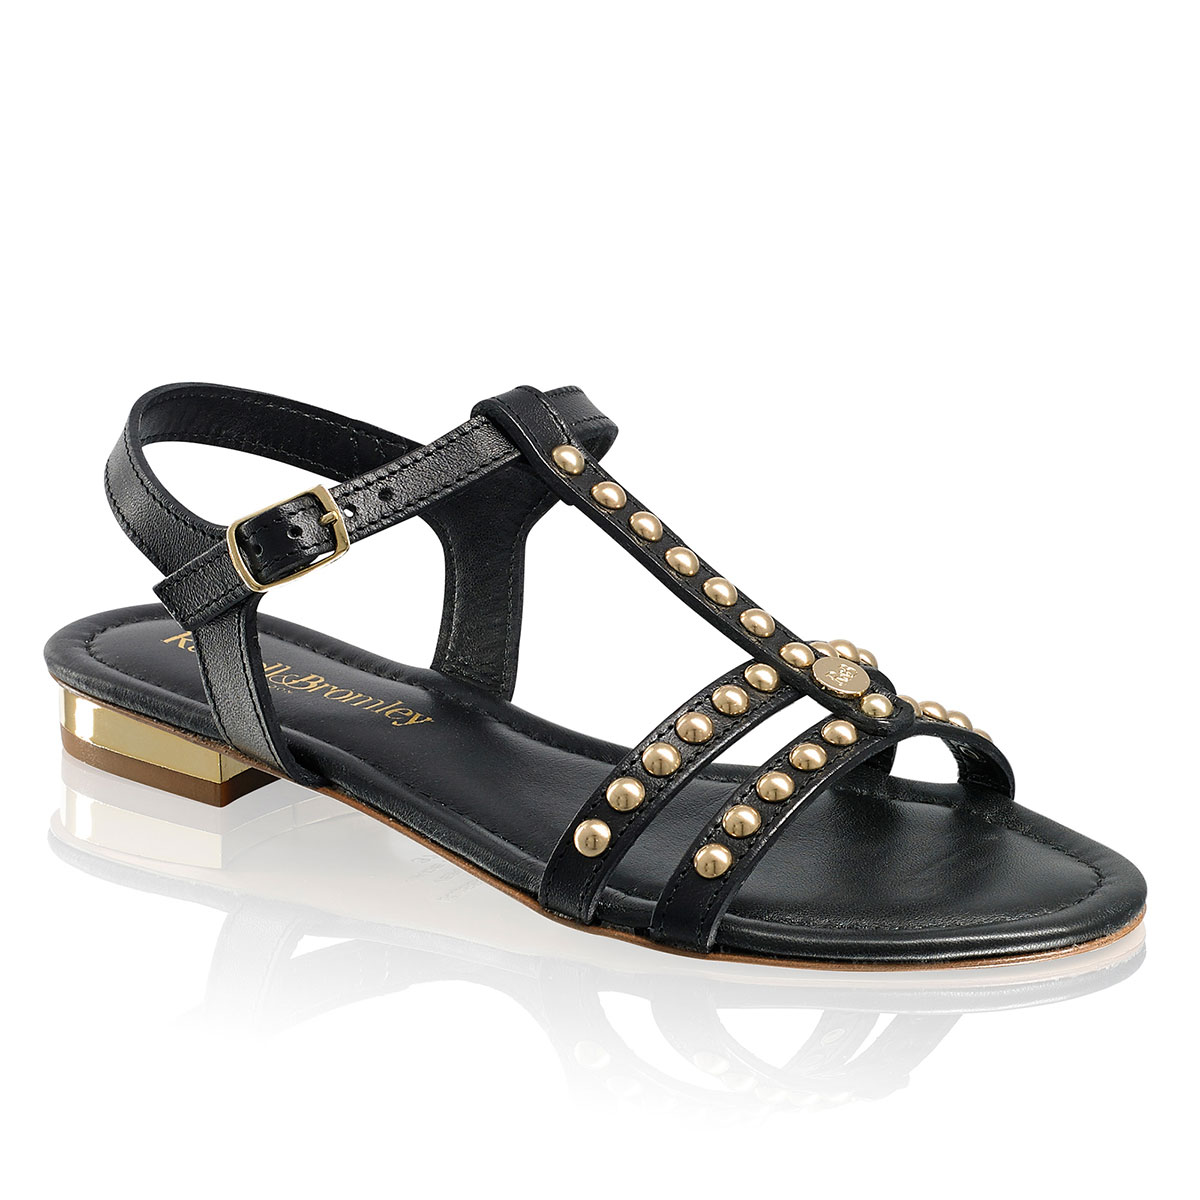 Russell And Bromley PIAZZA Stud Trim Sandal